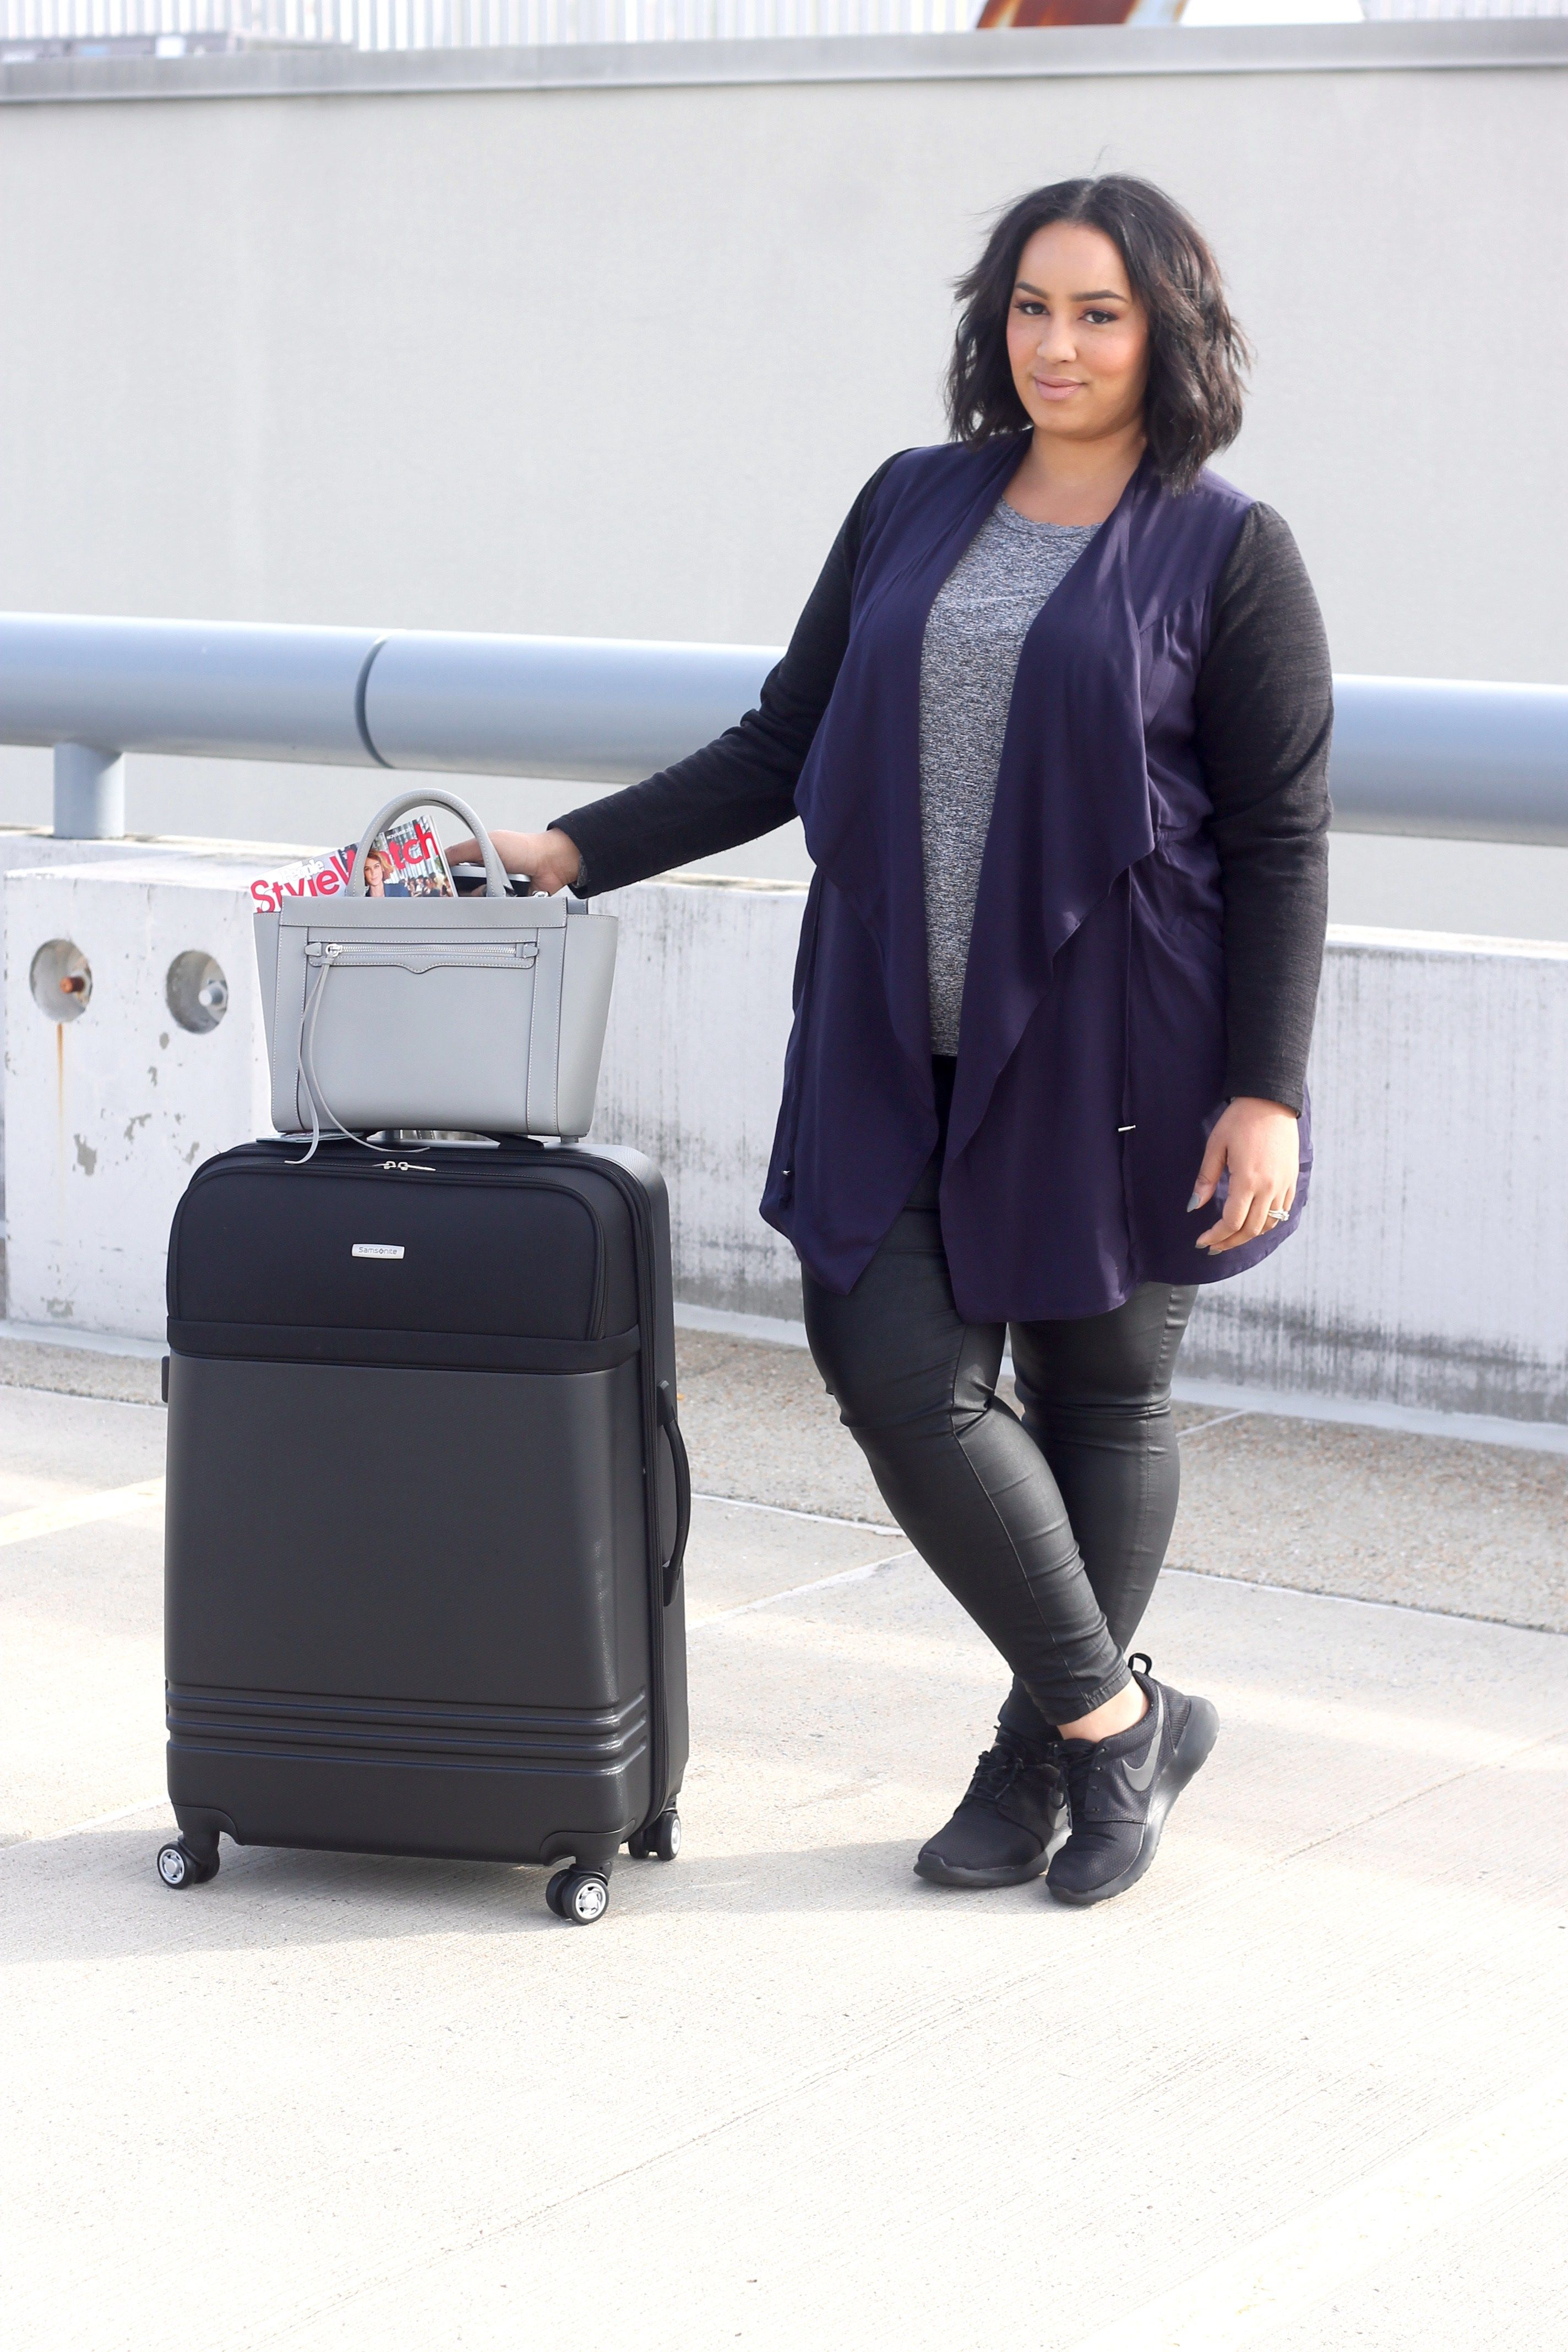 5bd9340bee8 Plus Size Fashion - Beauticurve - Traveling in style